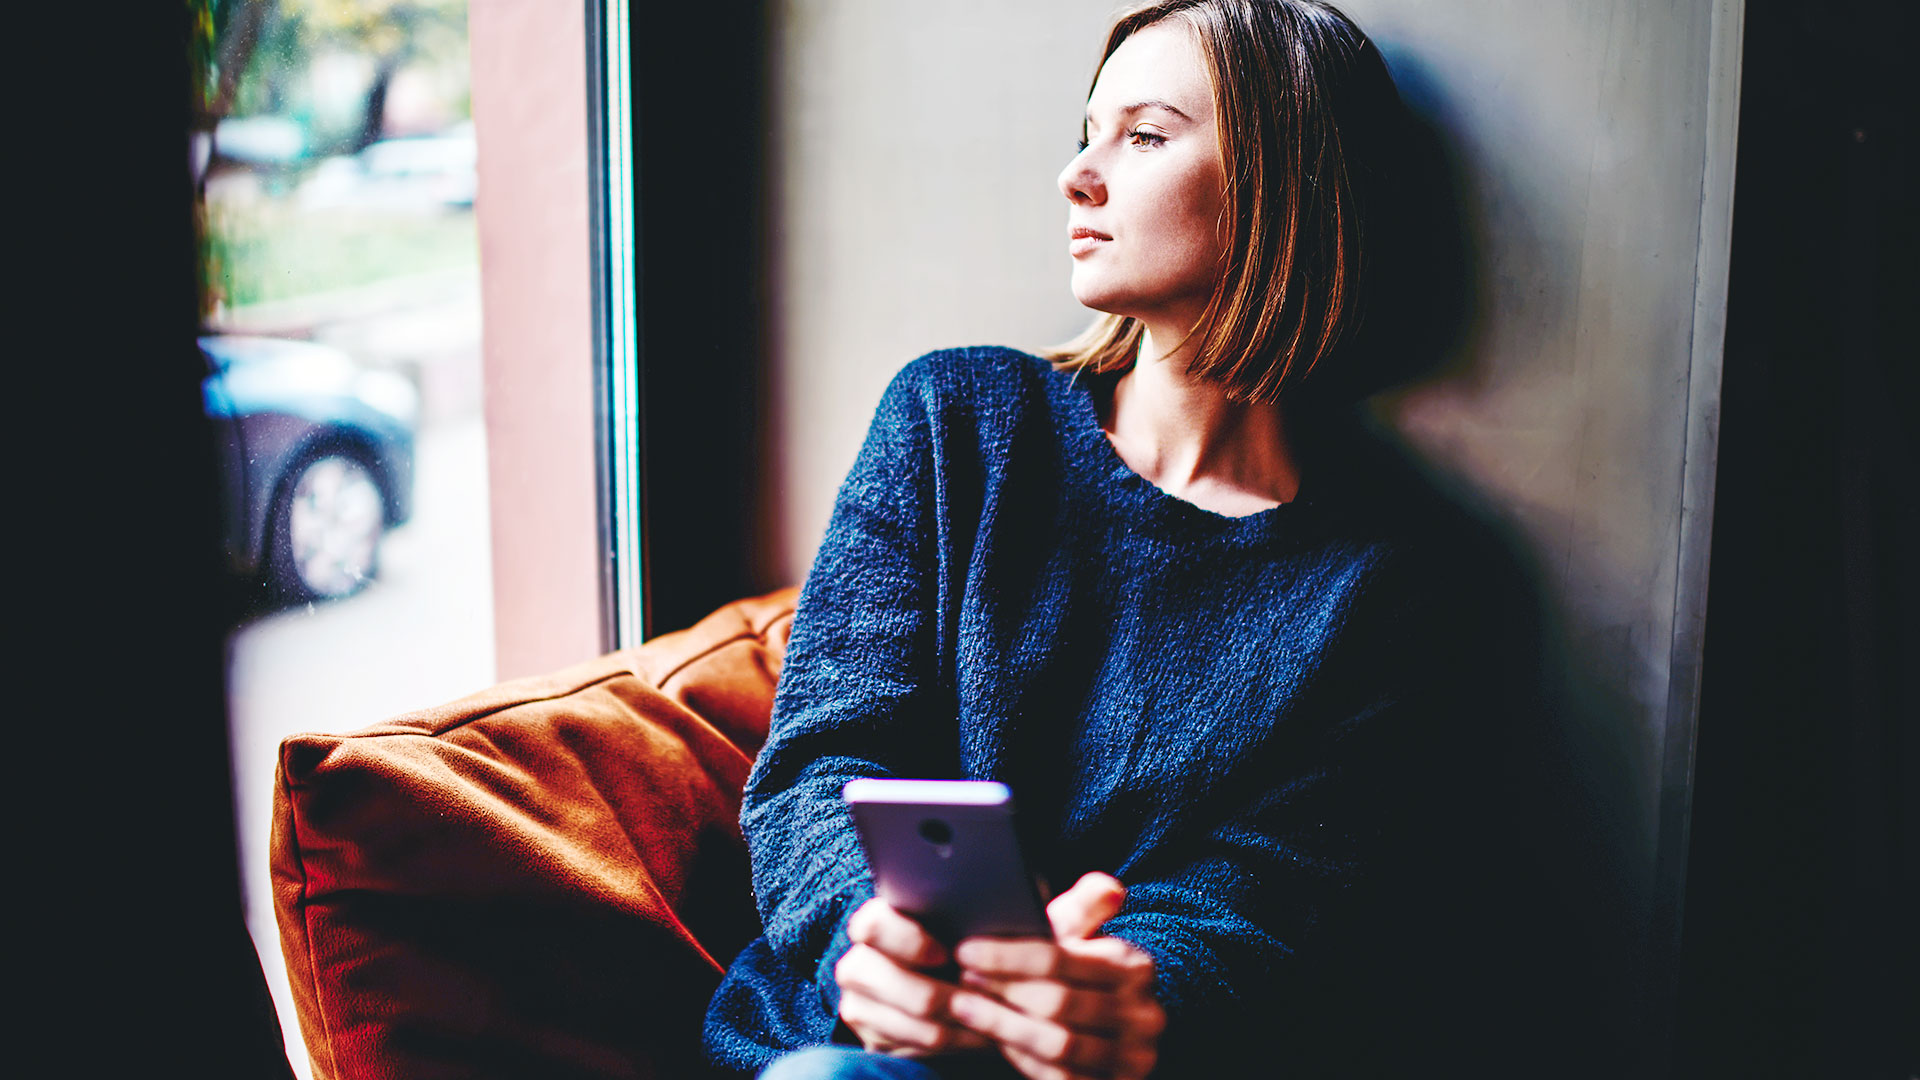 Woman looking out the window with phone in hand